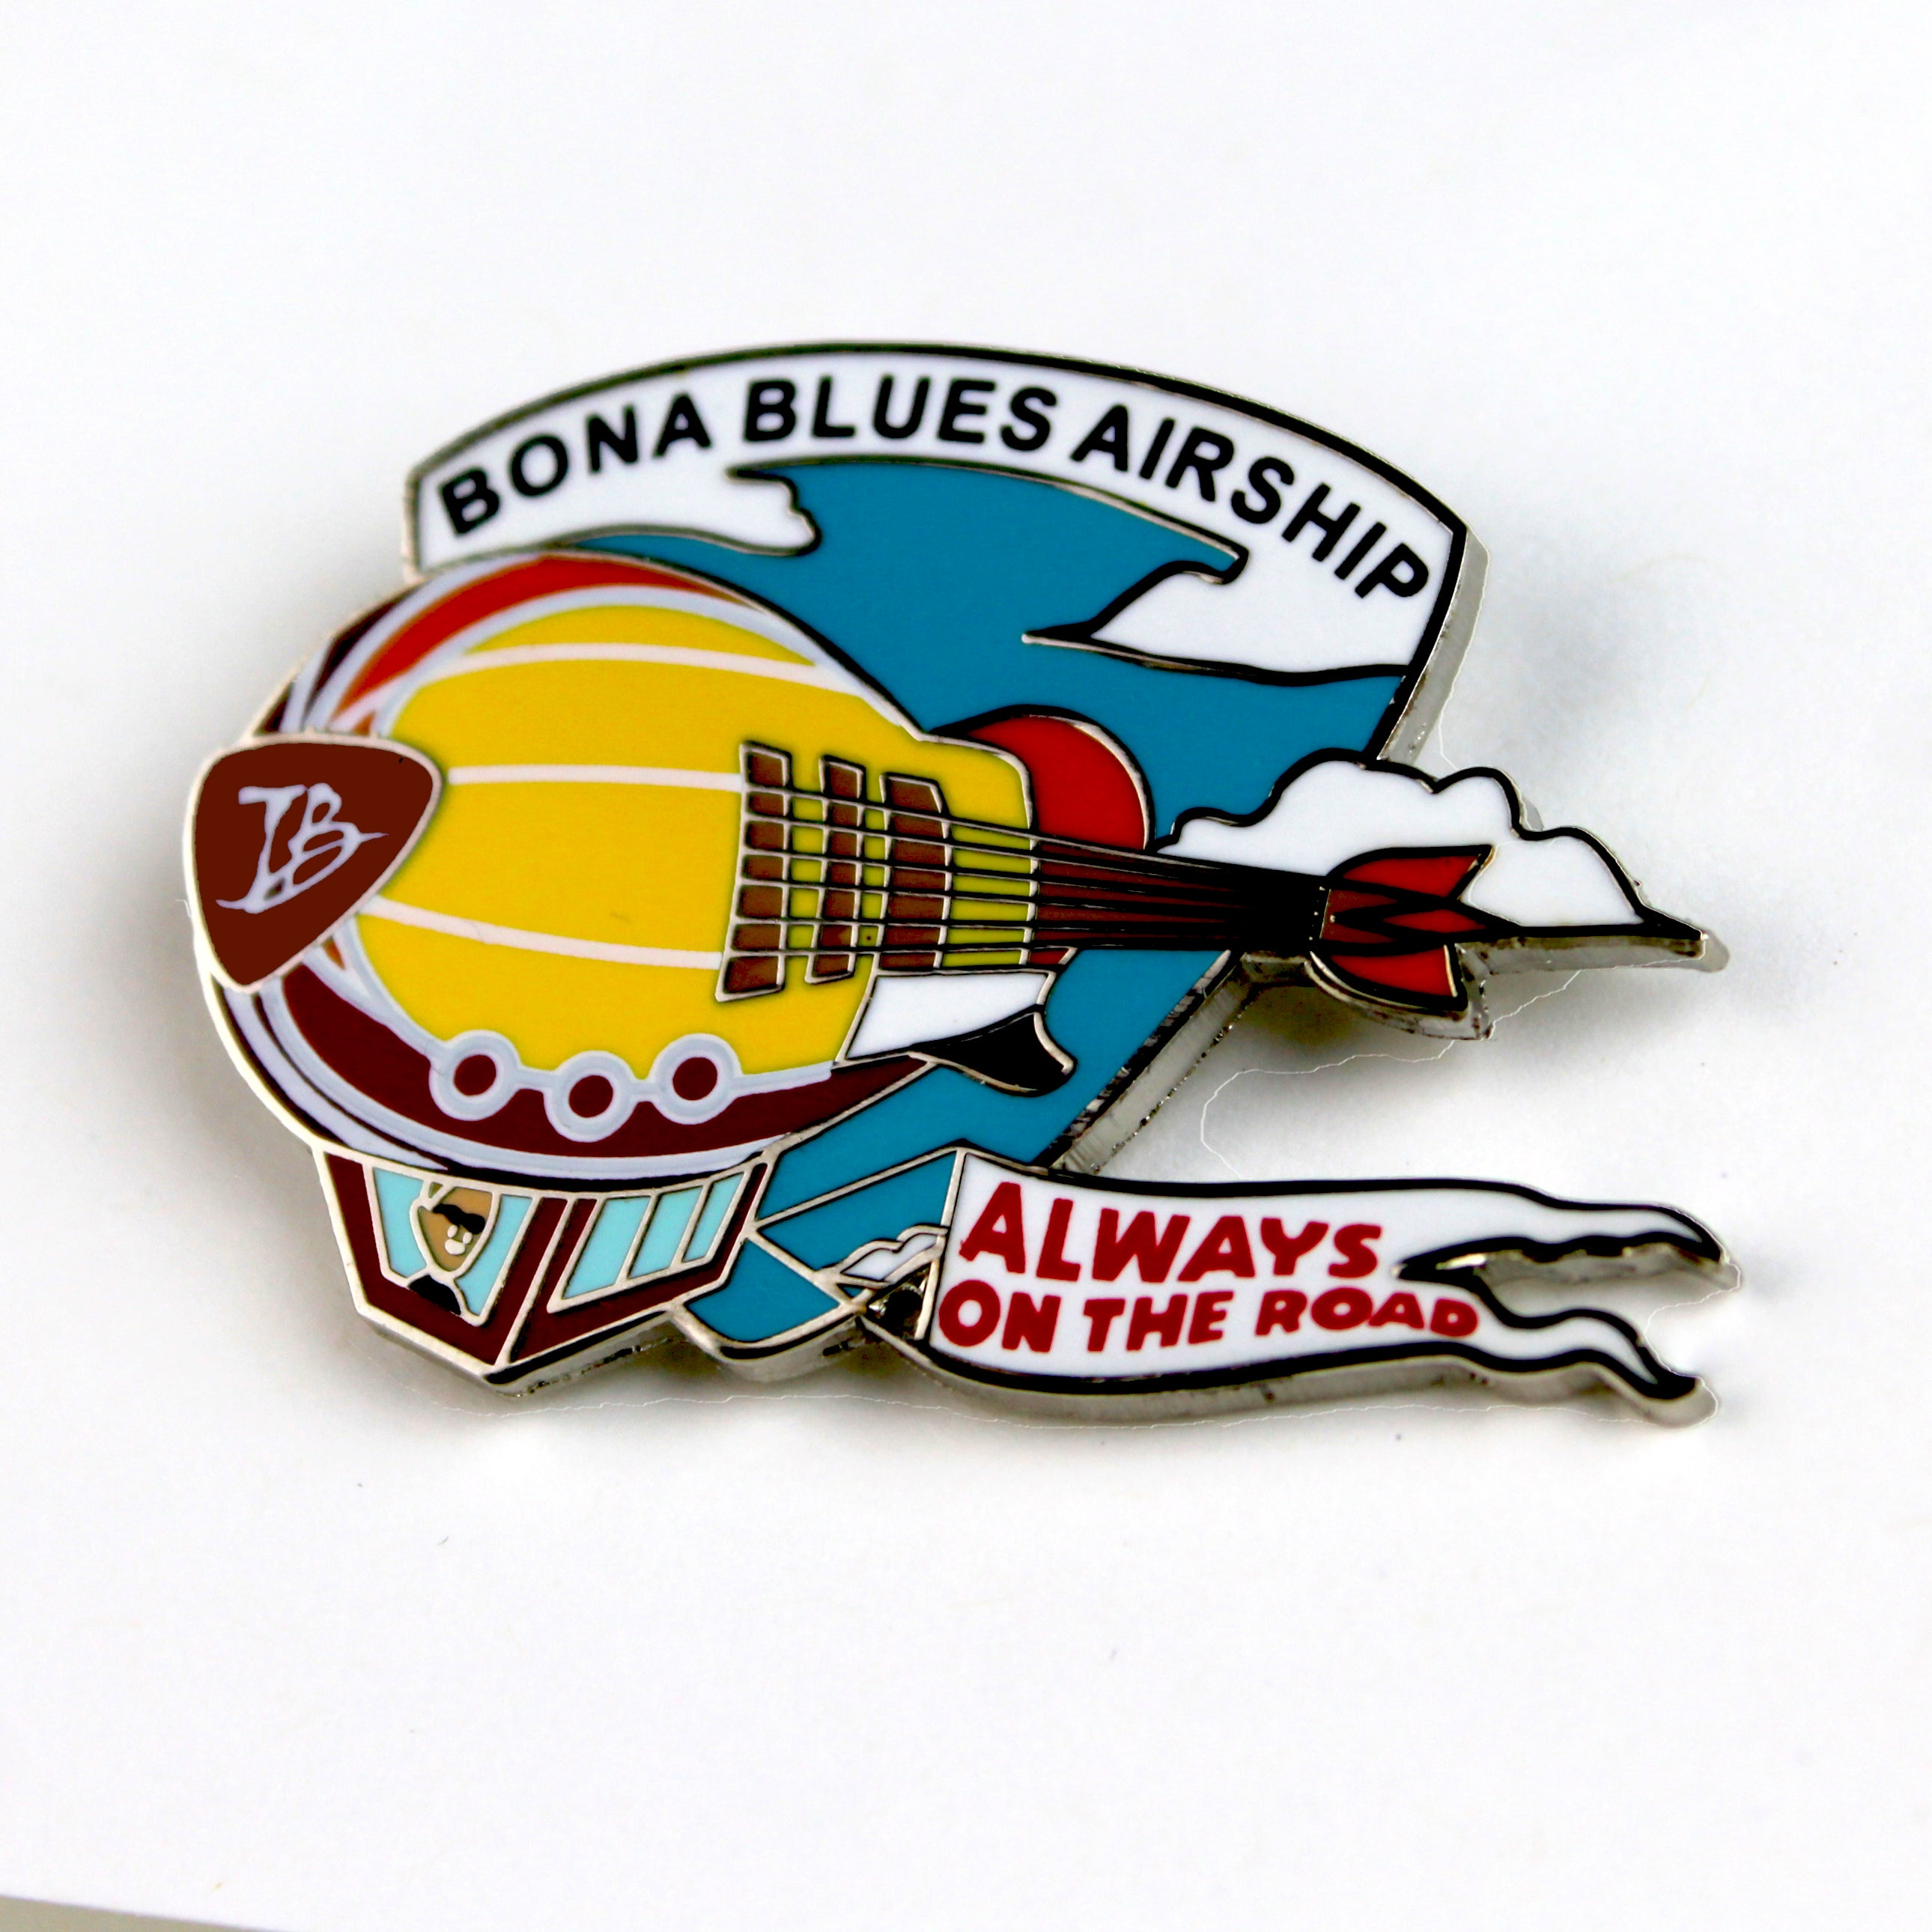 Bona Blues Airship Pin